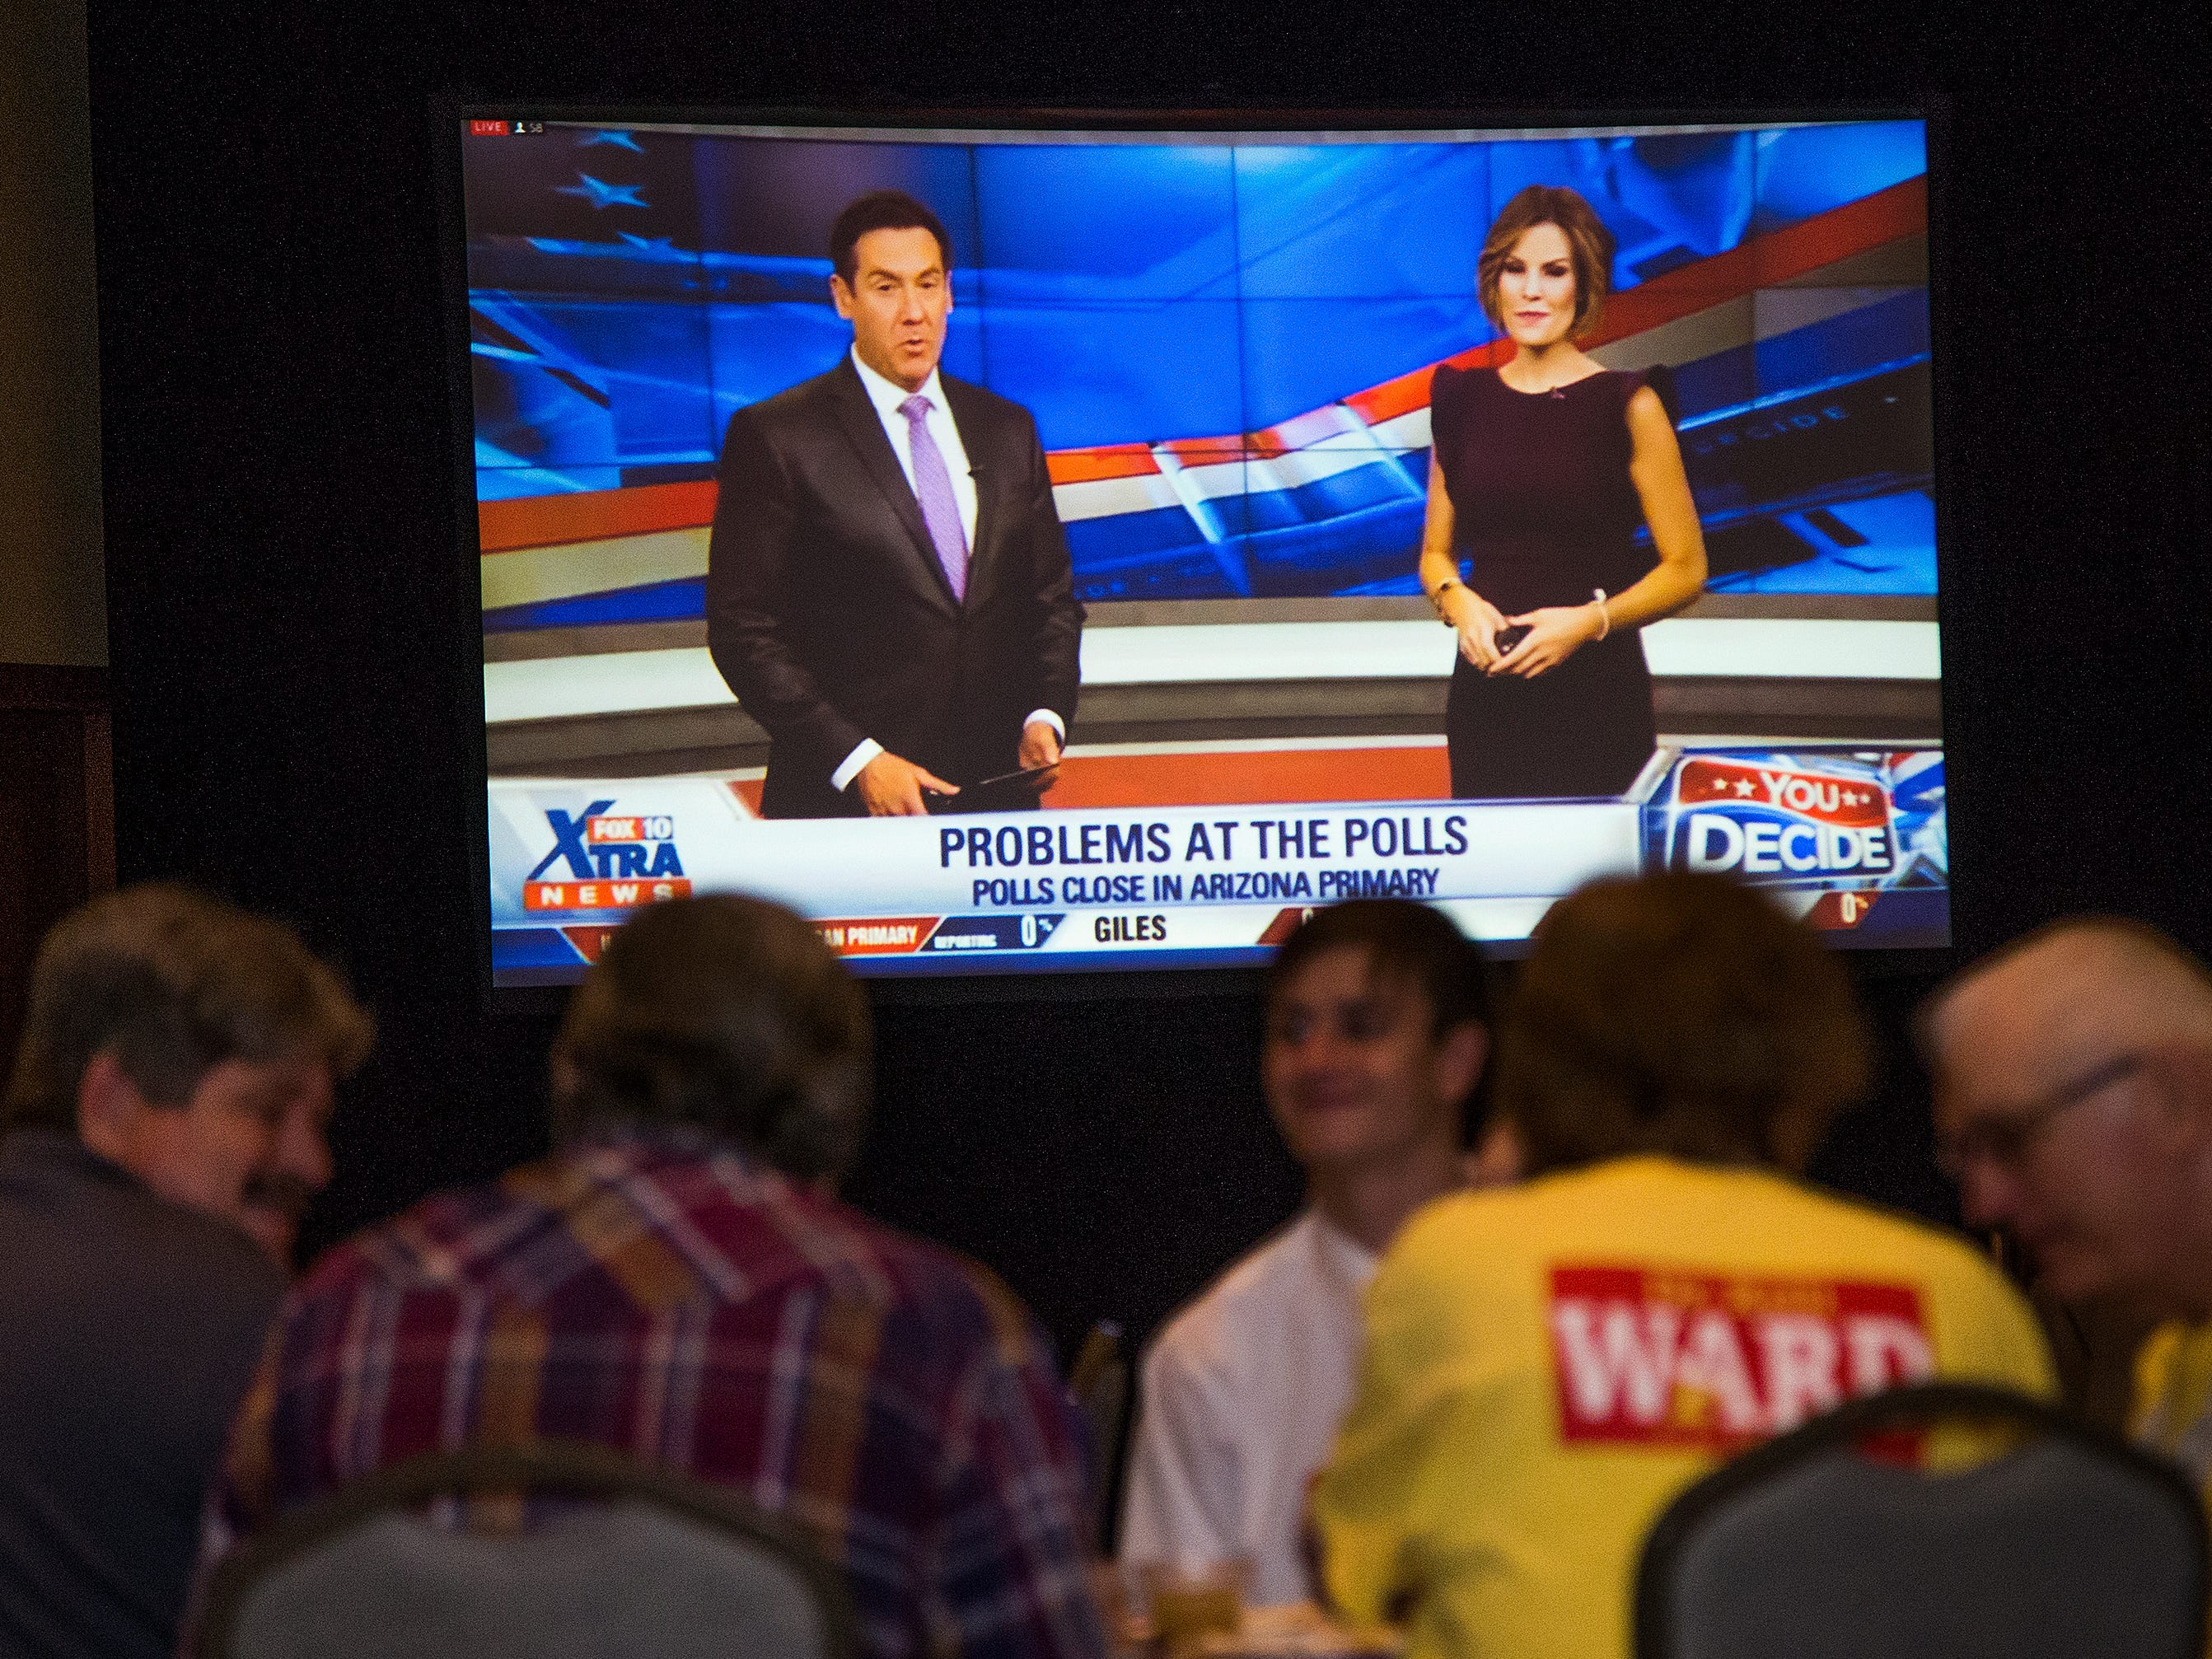 Supporters of Kelli Ward wait for her appearance at a primary election night party at Embassy Suites Scottsdale as reports of problems at the polls appear on a large TV screen on Aug. 28, 2018.